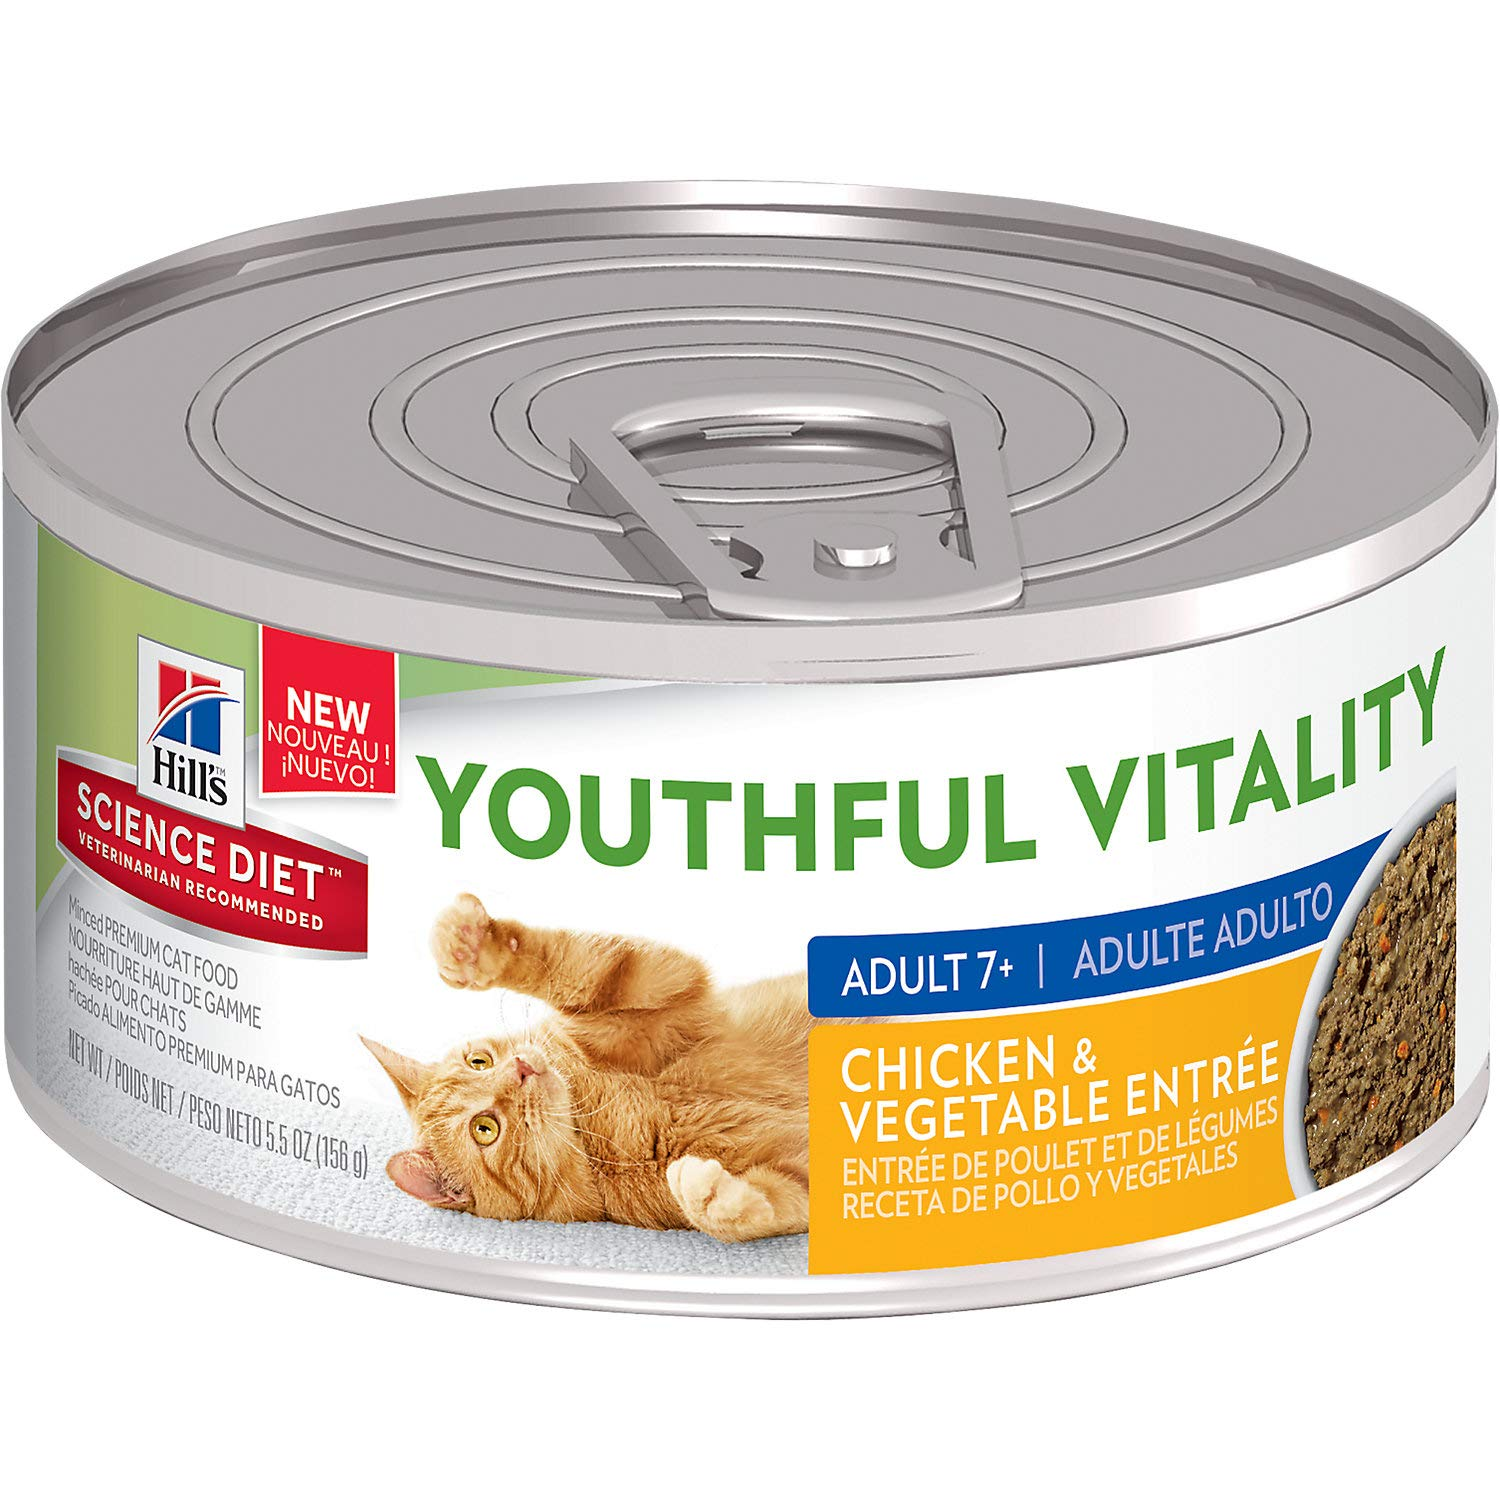 Amazon.com : Hills Science Diet Youthful Vitality Adult 7+ Chicken & Vegetable Entre Wet Cat Food, 5.5 oz, Case of 24, 24 X 5.5 OZ : Pet Supplies